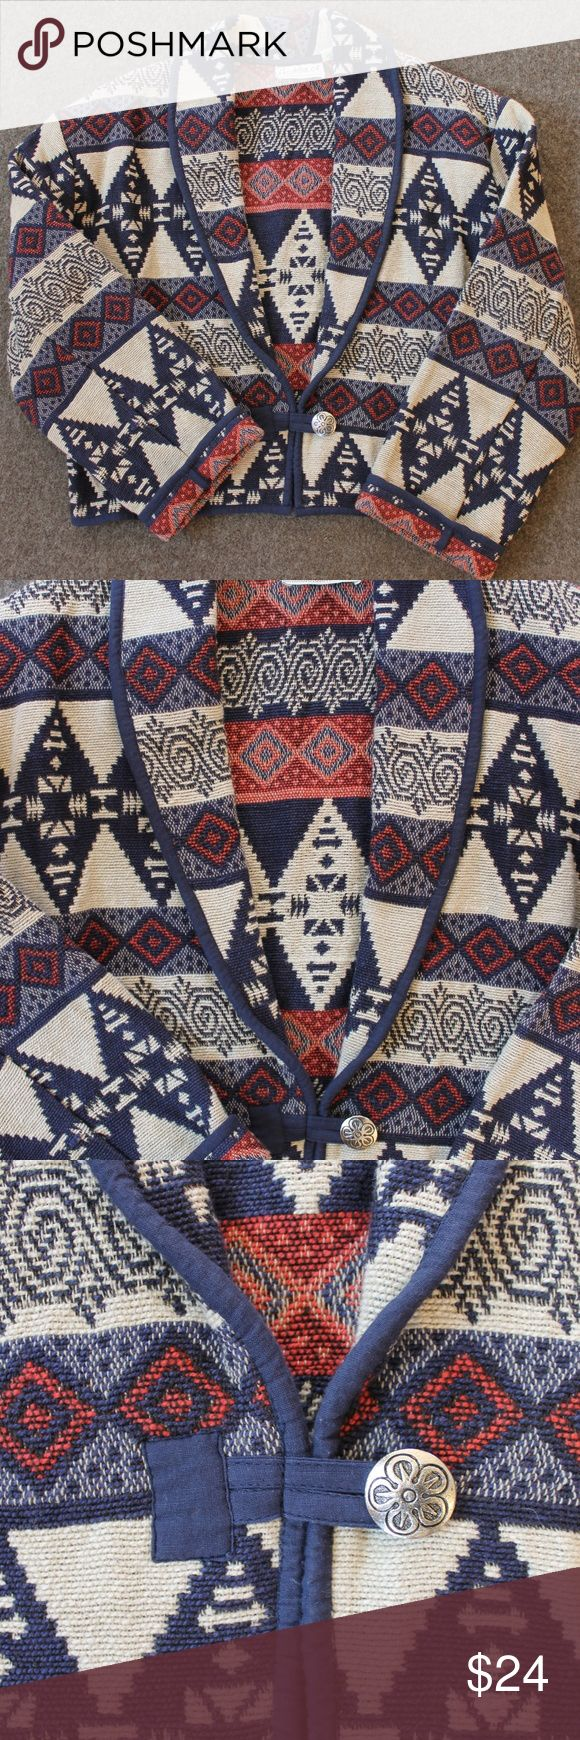 """Southwestern Tapestry Woven Jacket Heavy 100% cotton doubleweave jacket. Wide collar with lapels. Single metal button and loop closure. Sleeves can be cuffed. Beautiful Southwest pattern in navy blue and rust on a cream background. Size M. Measurements are: 21"""" long from shoulder to hem, 22"""" across at underarms, 18"""" across at hem. Sleeve inseam: 16"""". Drycleaning recommended. Excellent condition. Flashback Jackets & Coats Blazers"""